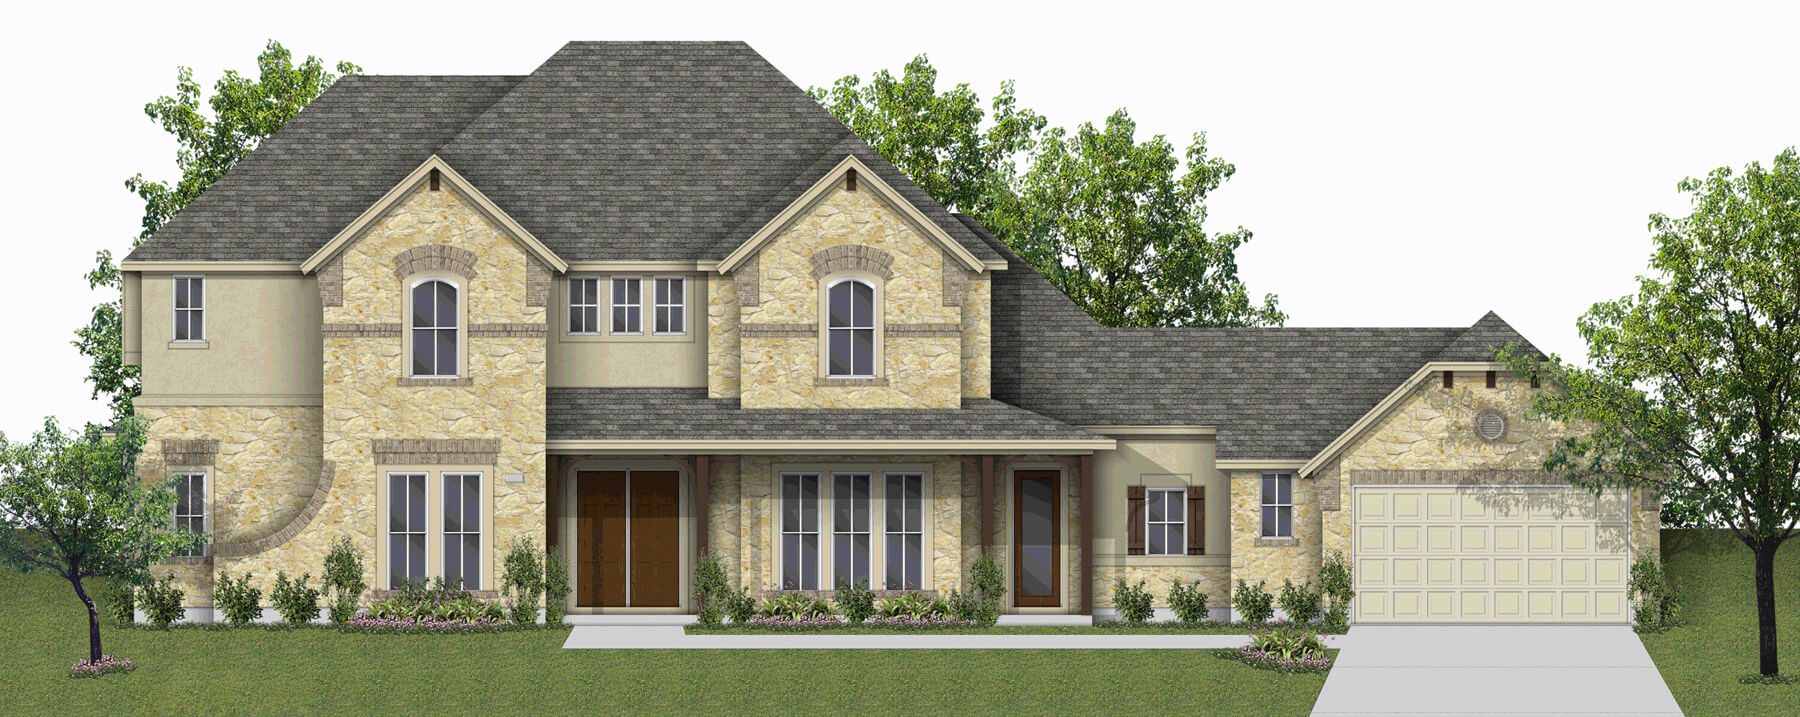 Default elevation for 4097 for Build on your lot houston floor plans